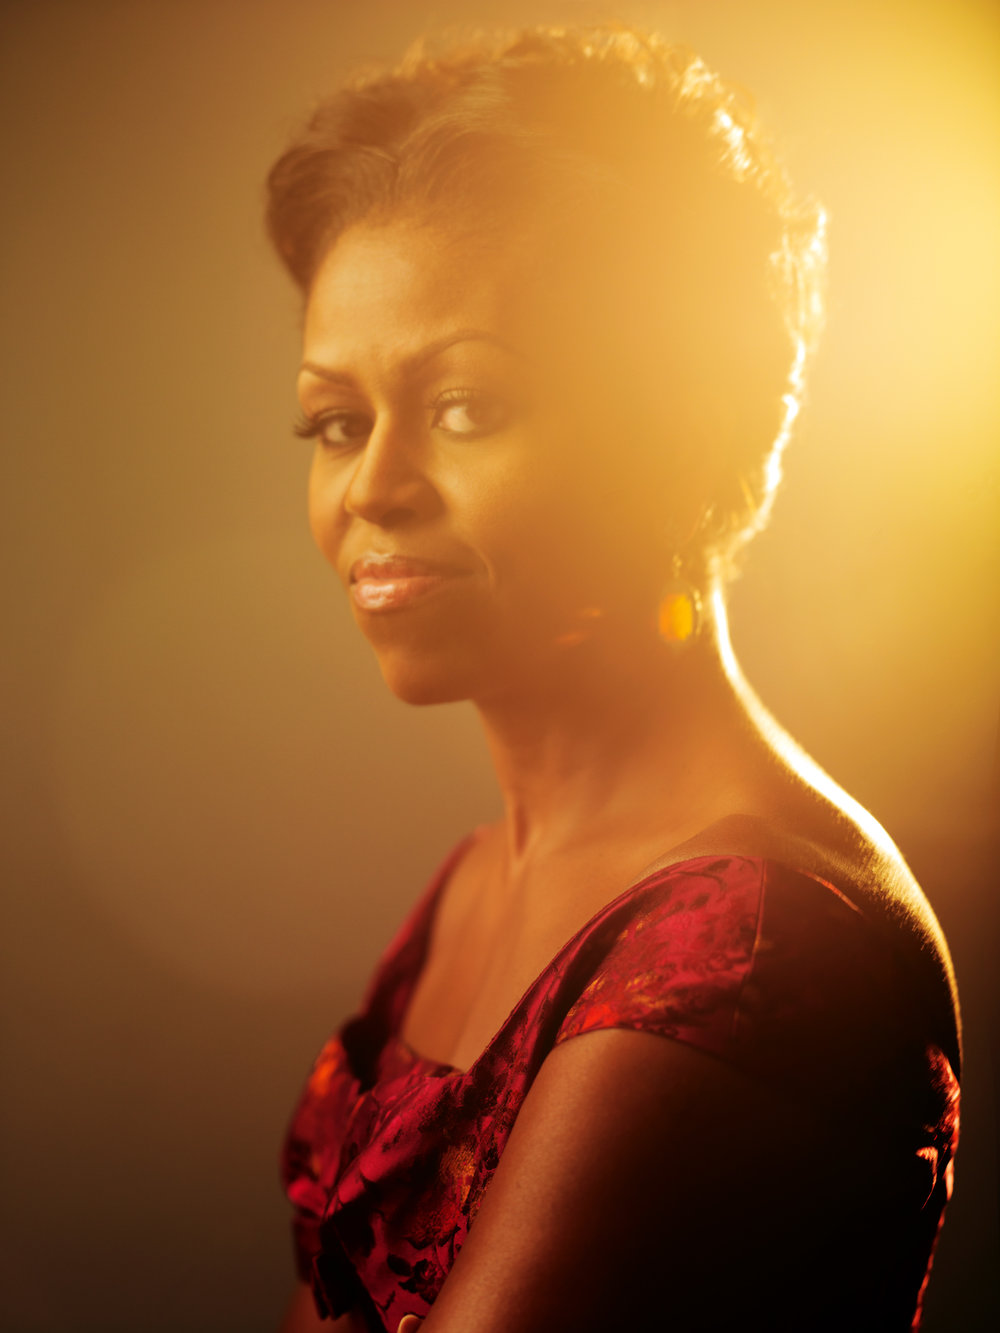 Kwaku Alston [Michelle Obama] 2011 © Getty Images